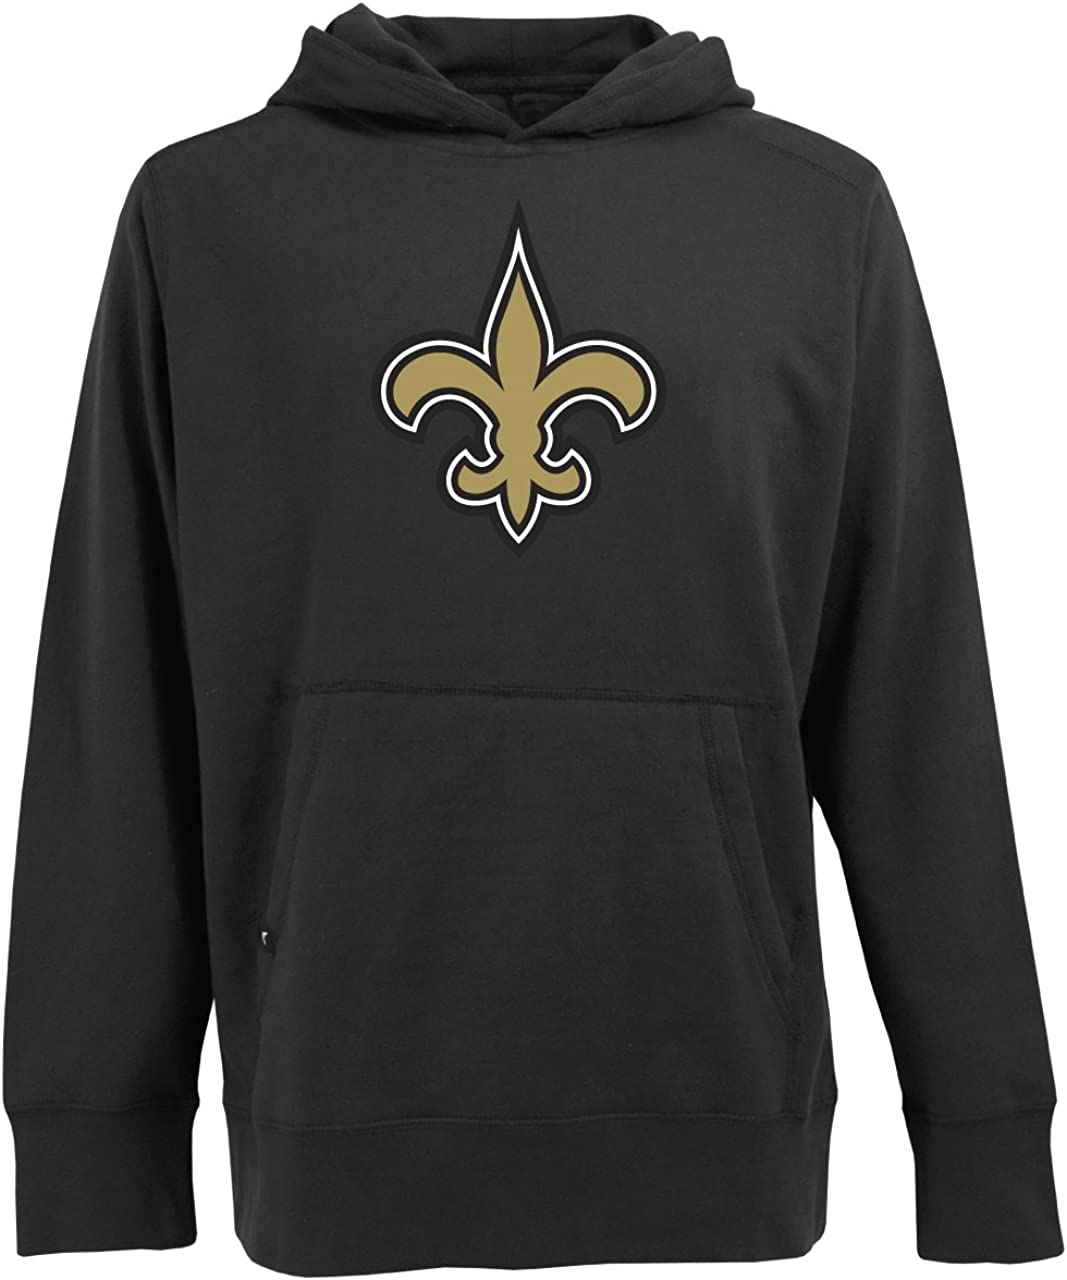 NFL Men's New SEAL limited product Orleans Saints Sweatshirt Ranking TOP14 Signature Black Hooded